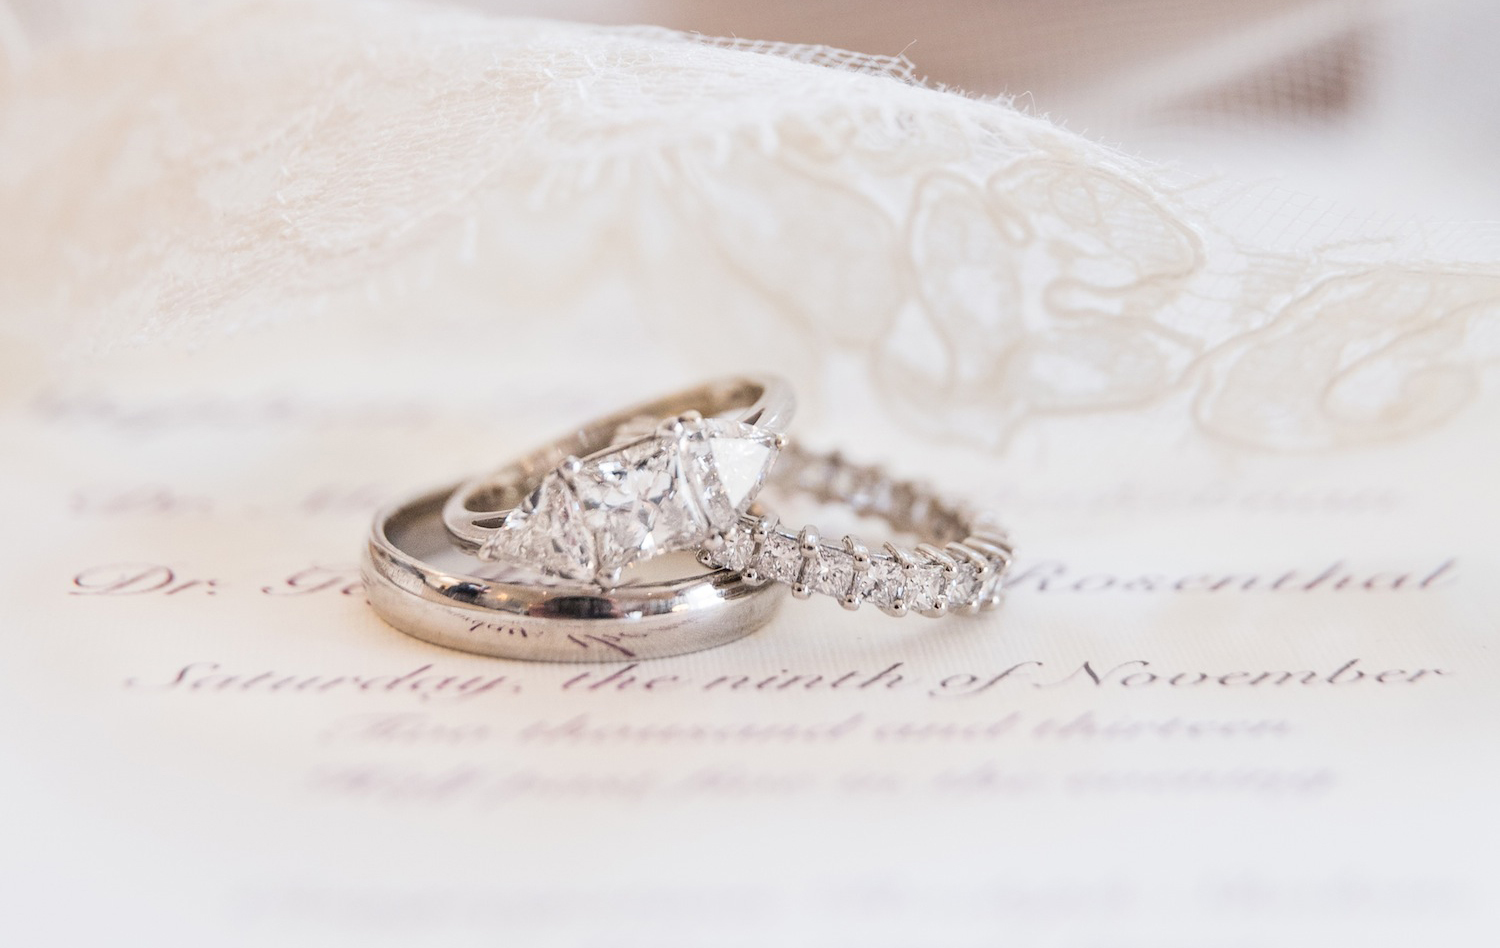 samira wiley engagement ring inspiration, princess cut diamond ring with triangle side stones